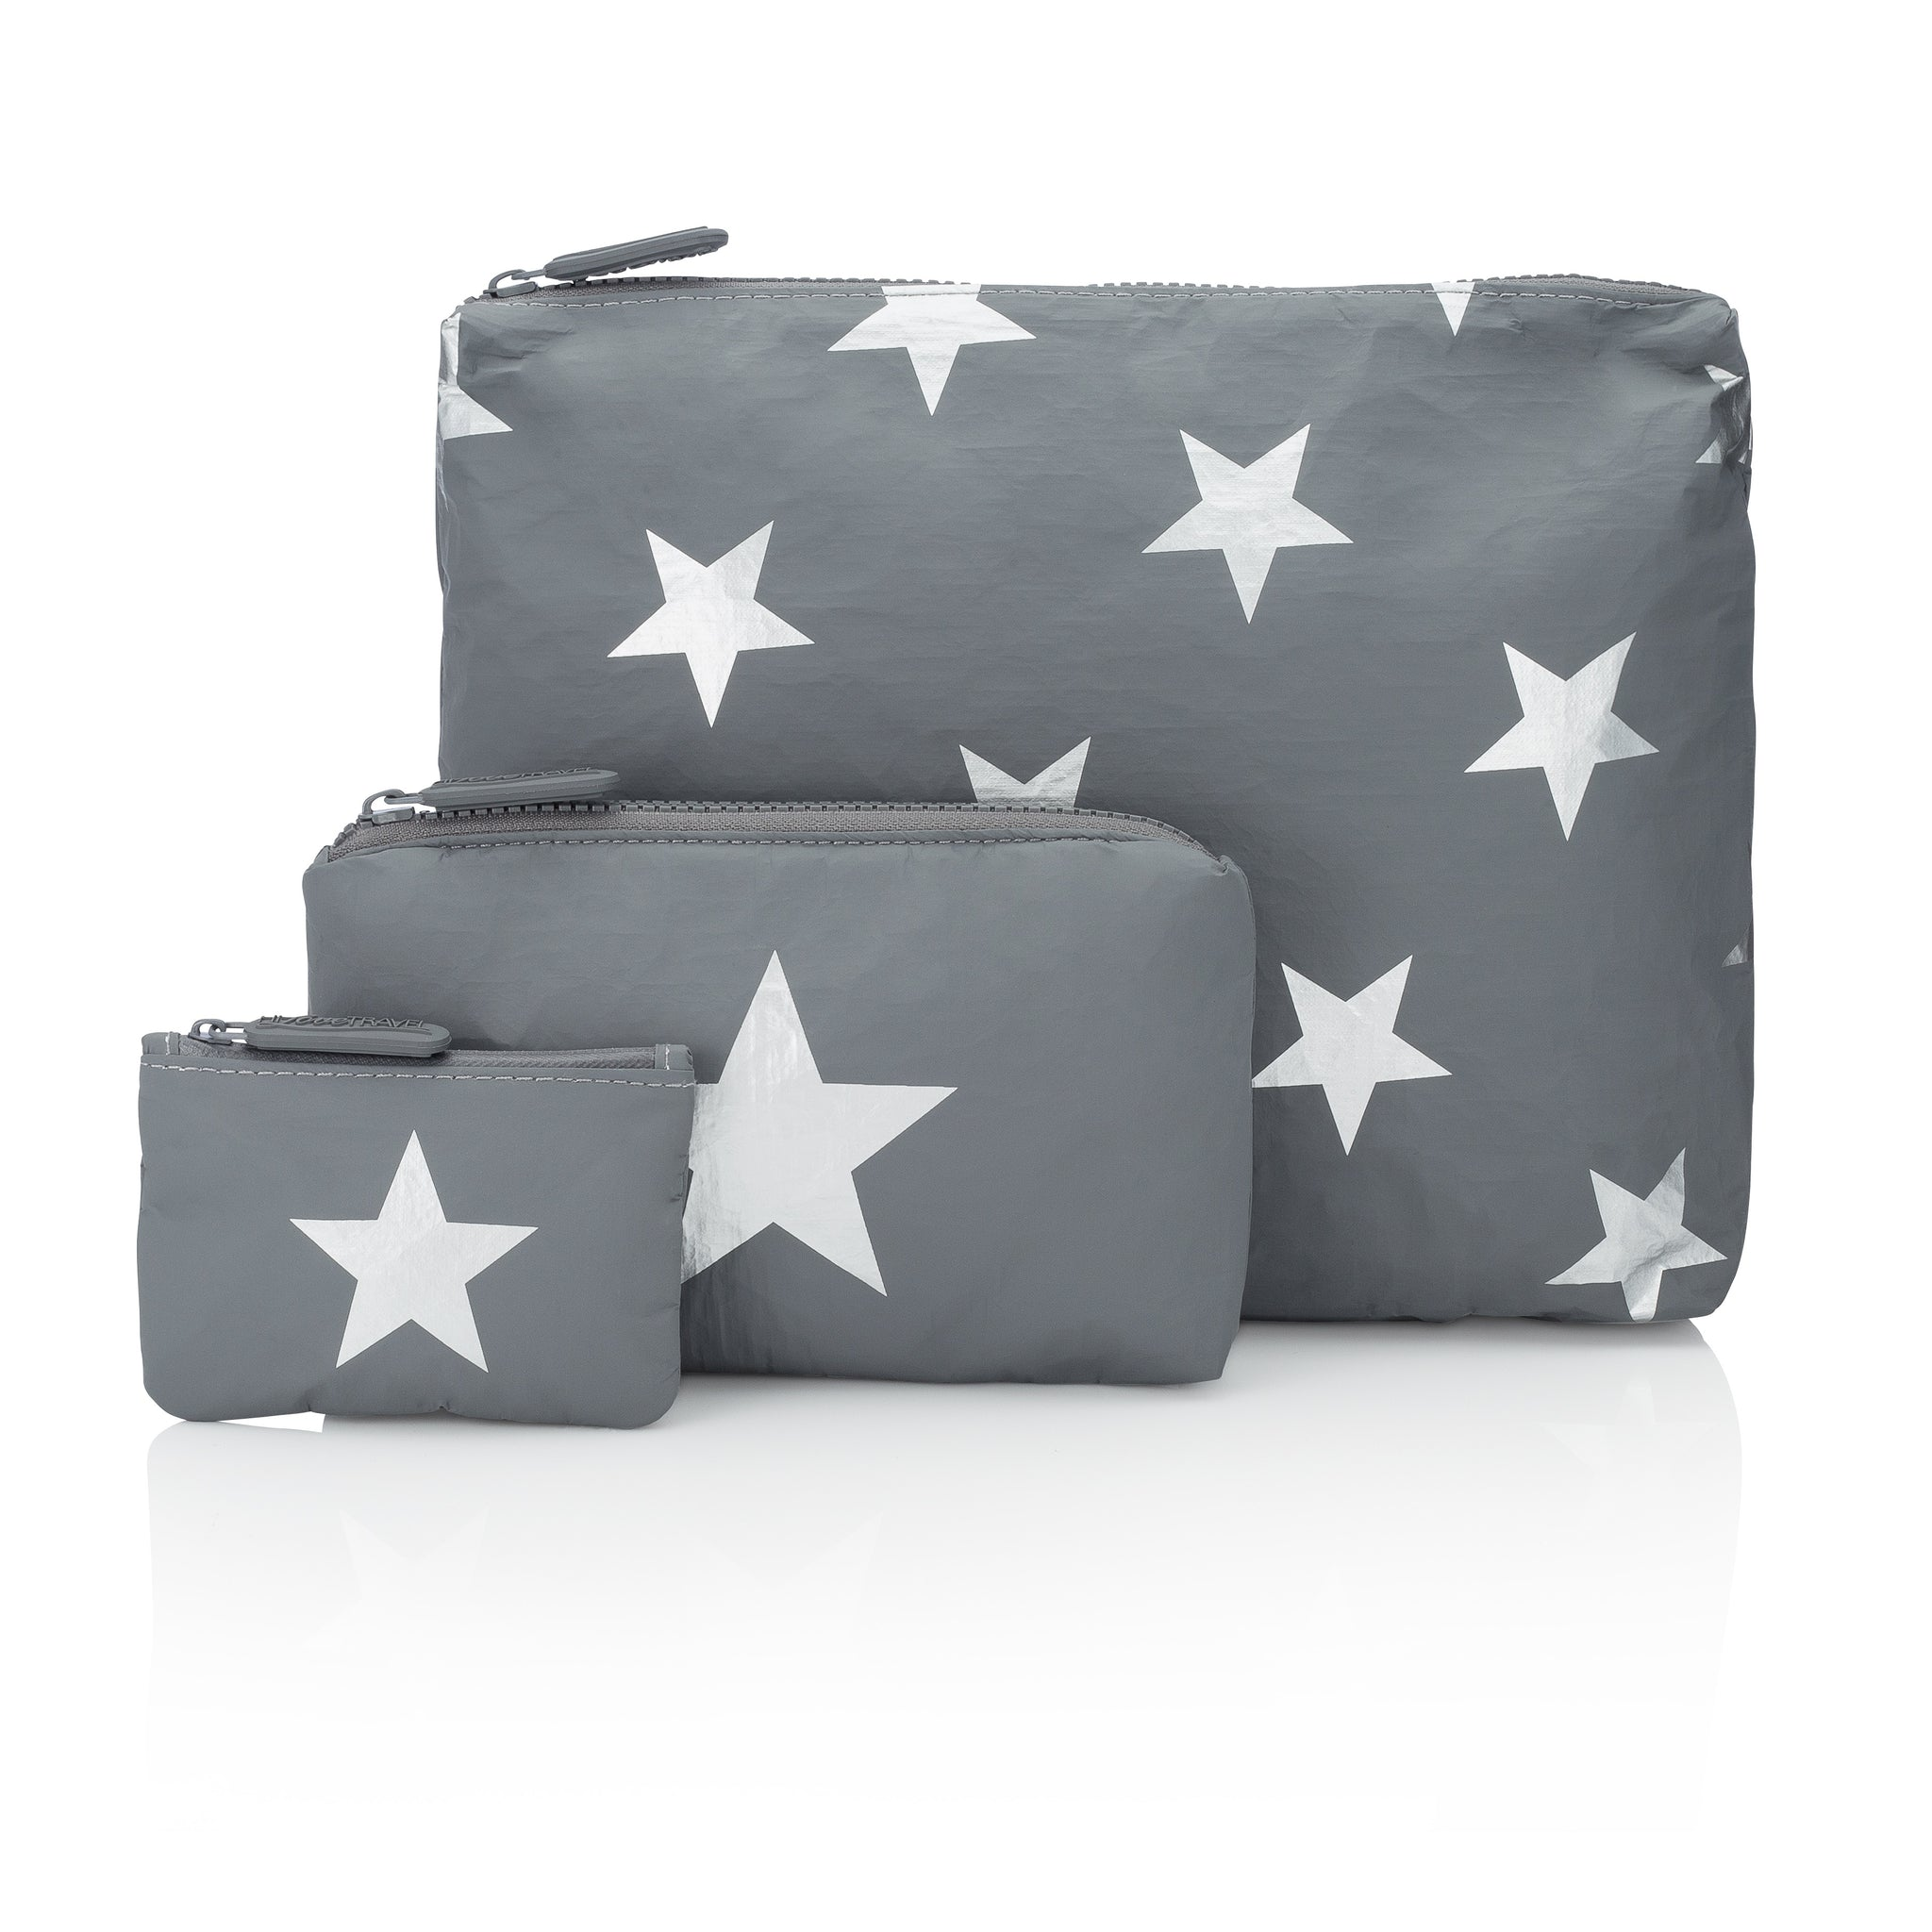 Travel Pack - Makeup Bag - Set of Three Packs - Cool Gray HLT Collection with Metallic Silver Stars